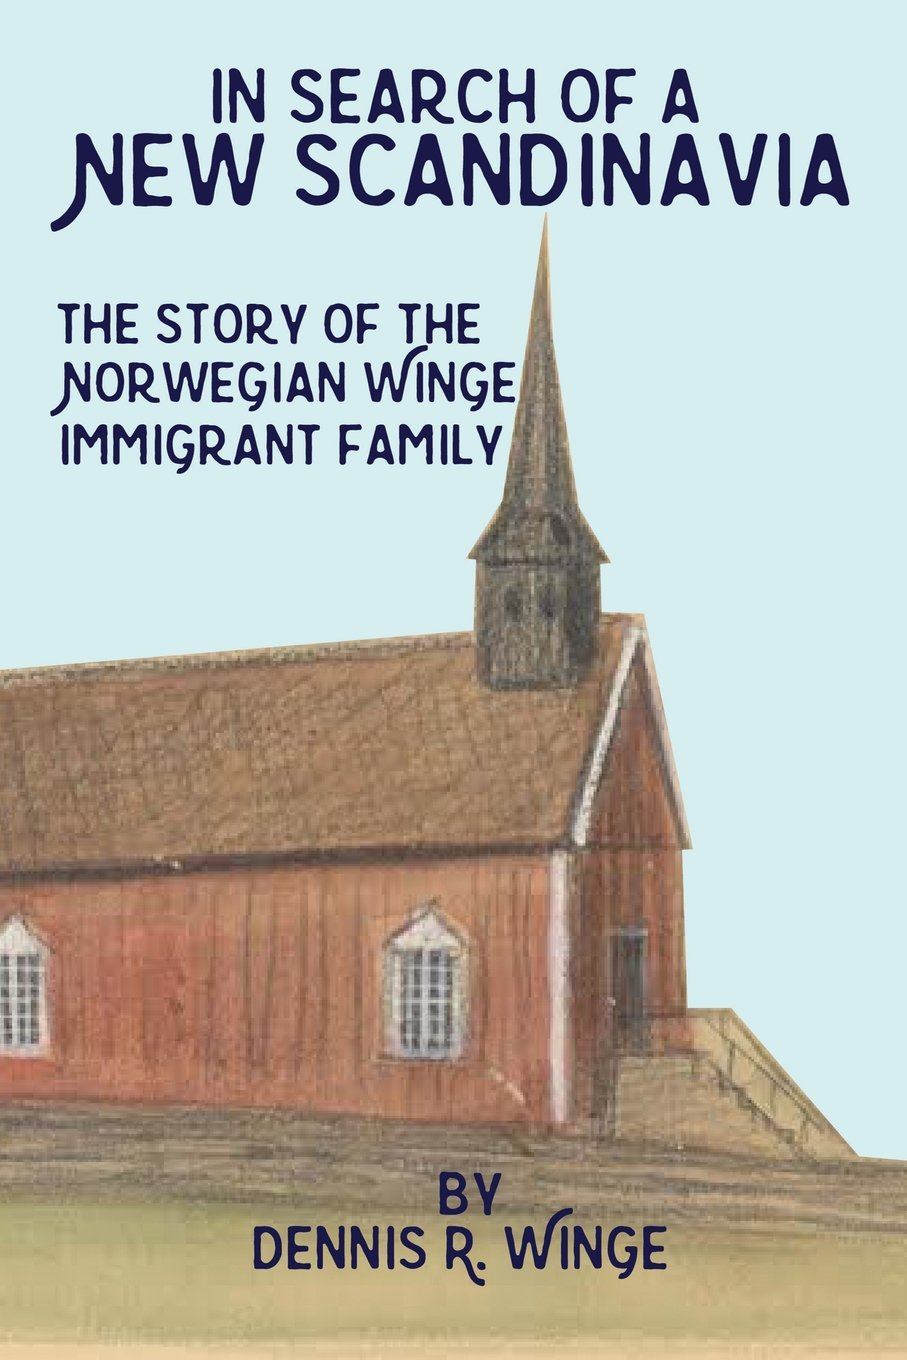 In Search of a New Scandinavia - The Story of the Norwegian Winge Immigrant Family pdf epub